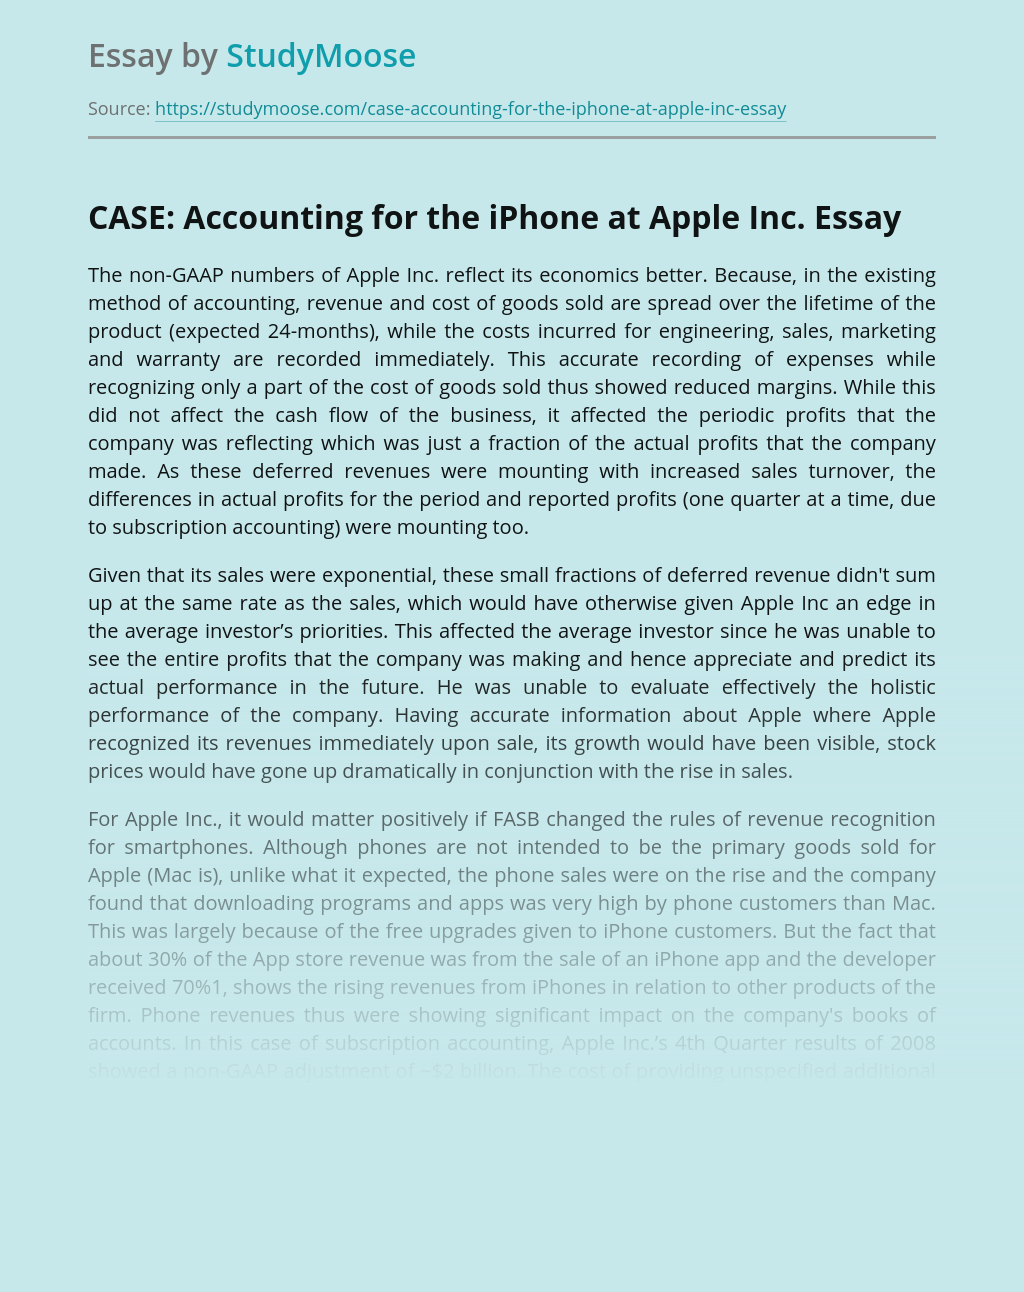 CASE: Accounting for the iPhone at Apple Inc.